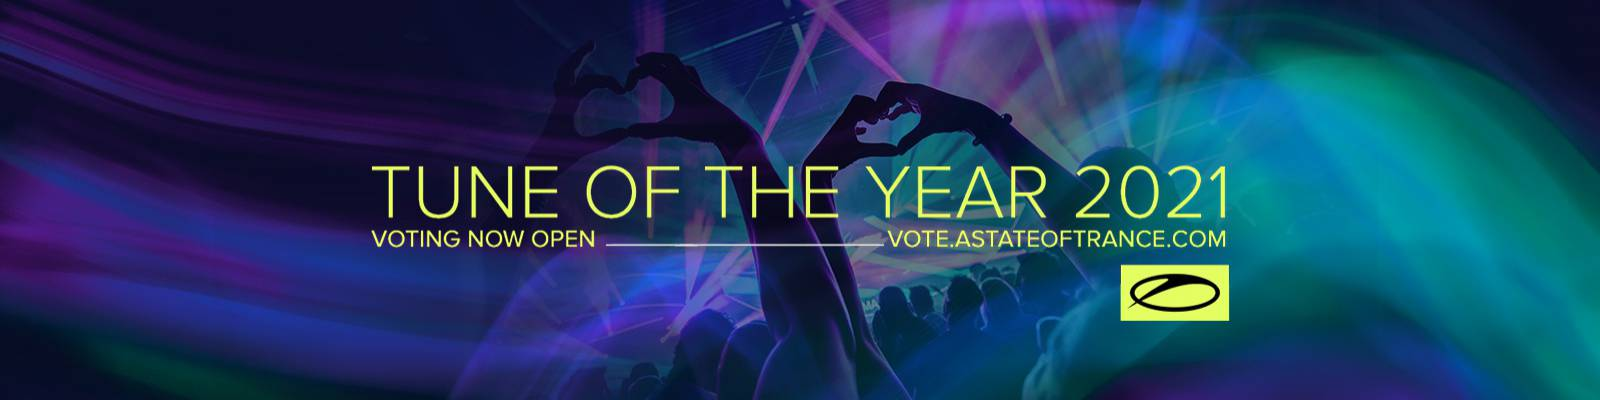 Vote for your ASOT Tune Of The Year 2021 and win!